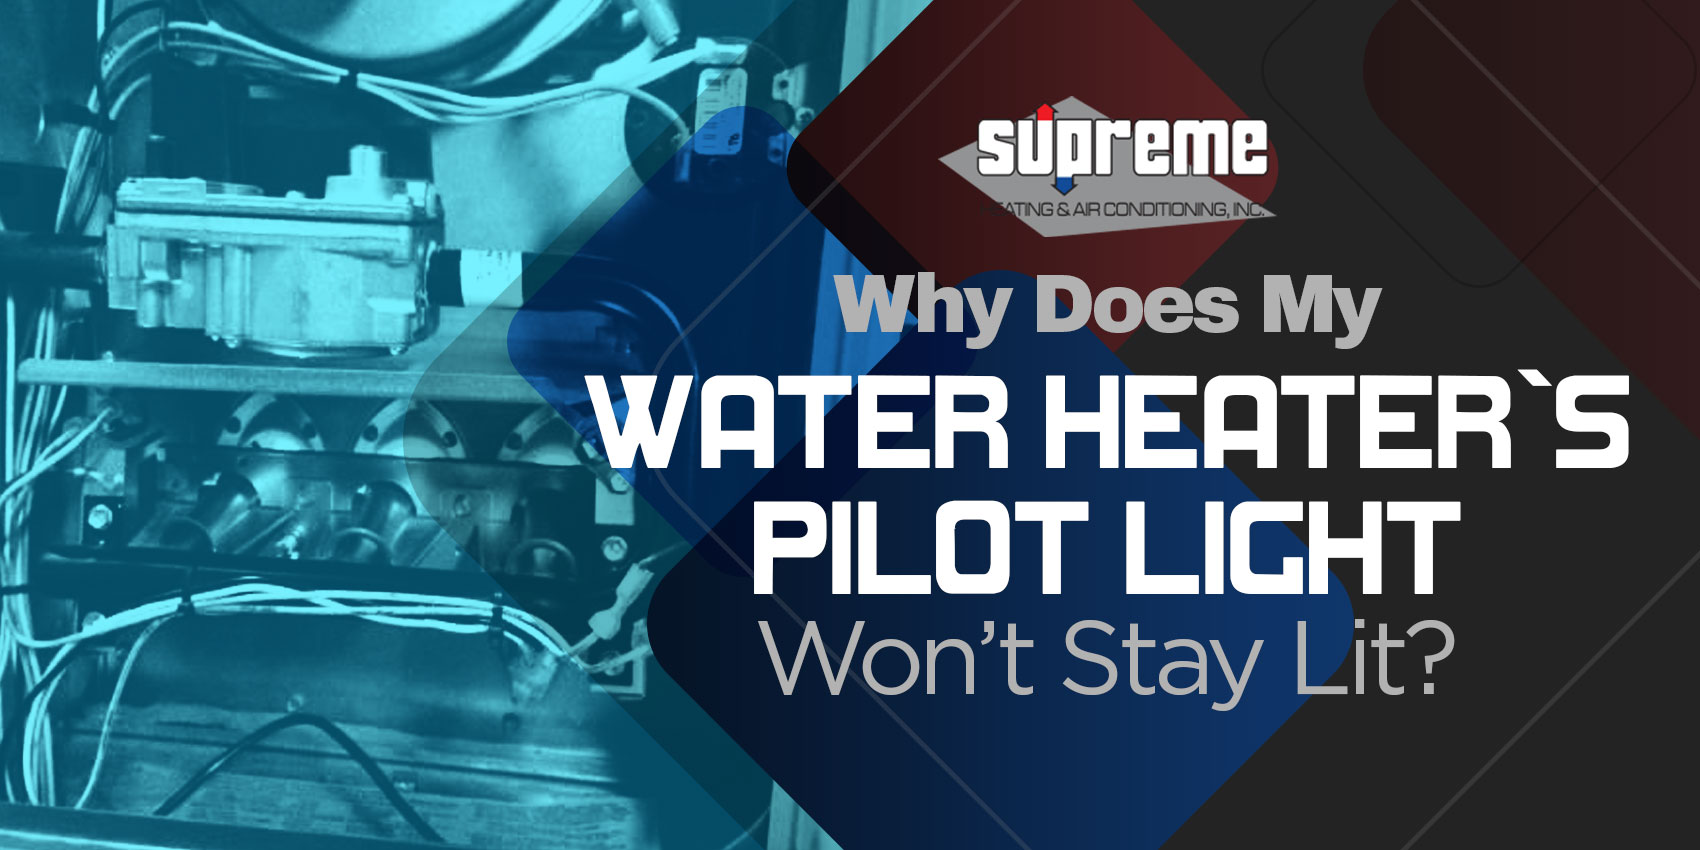 Why Does My Water Heater's Pilot Light Won't Stay Lit?